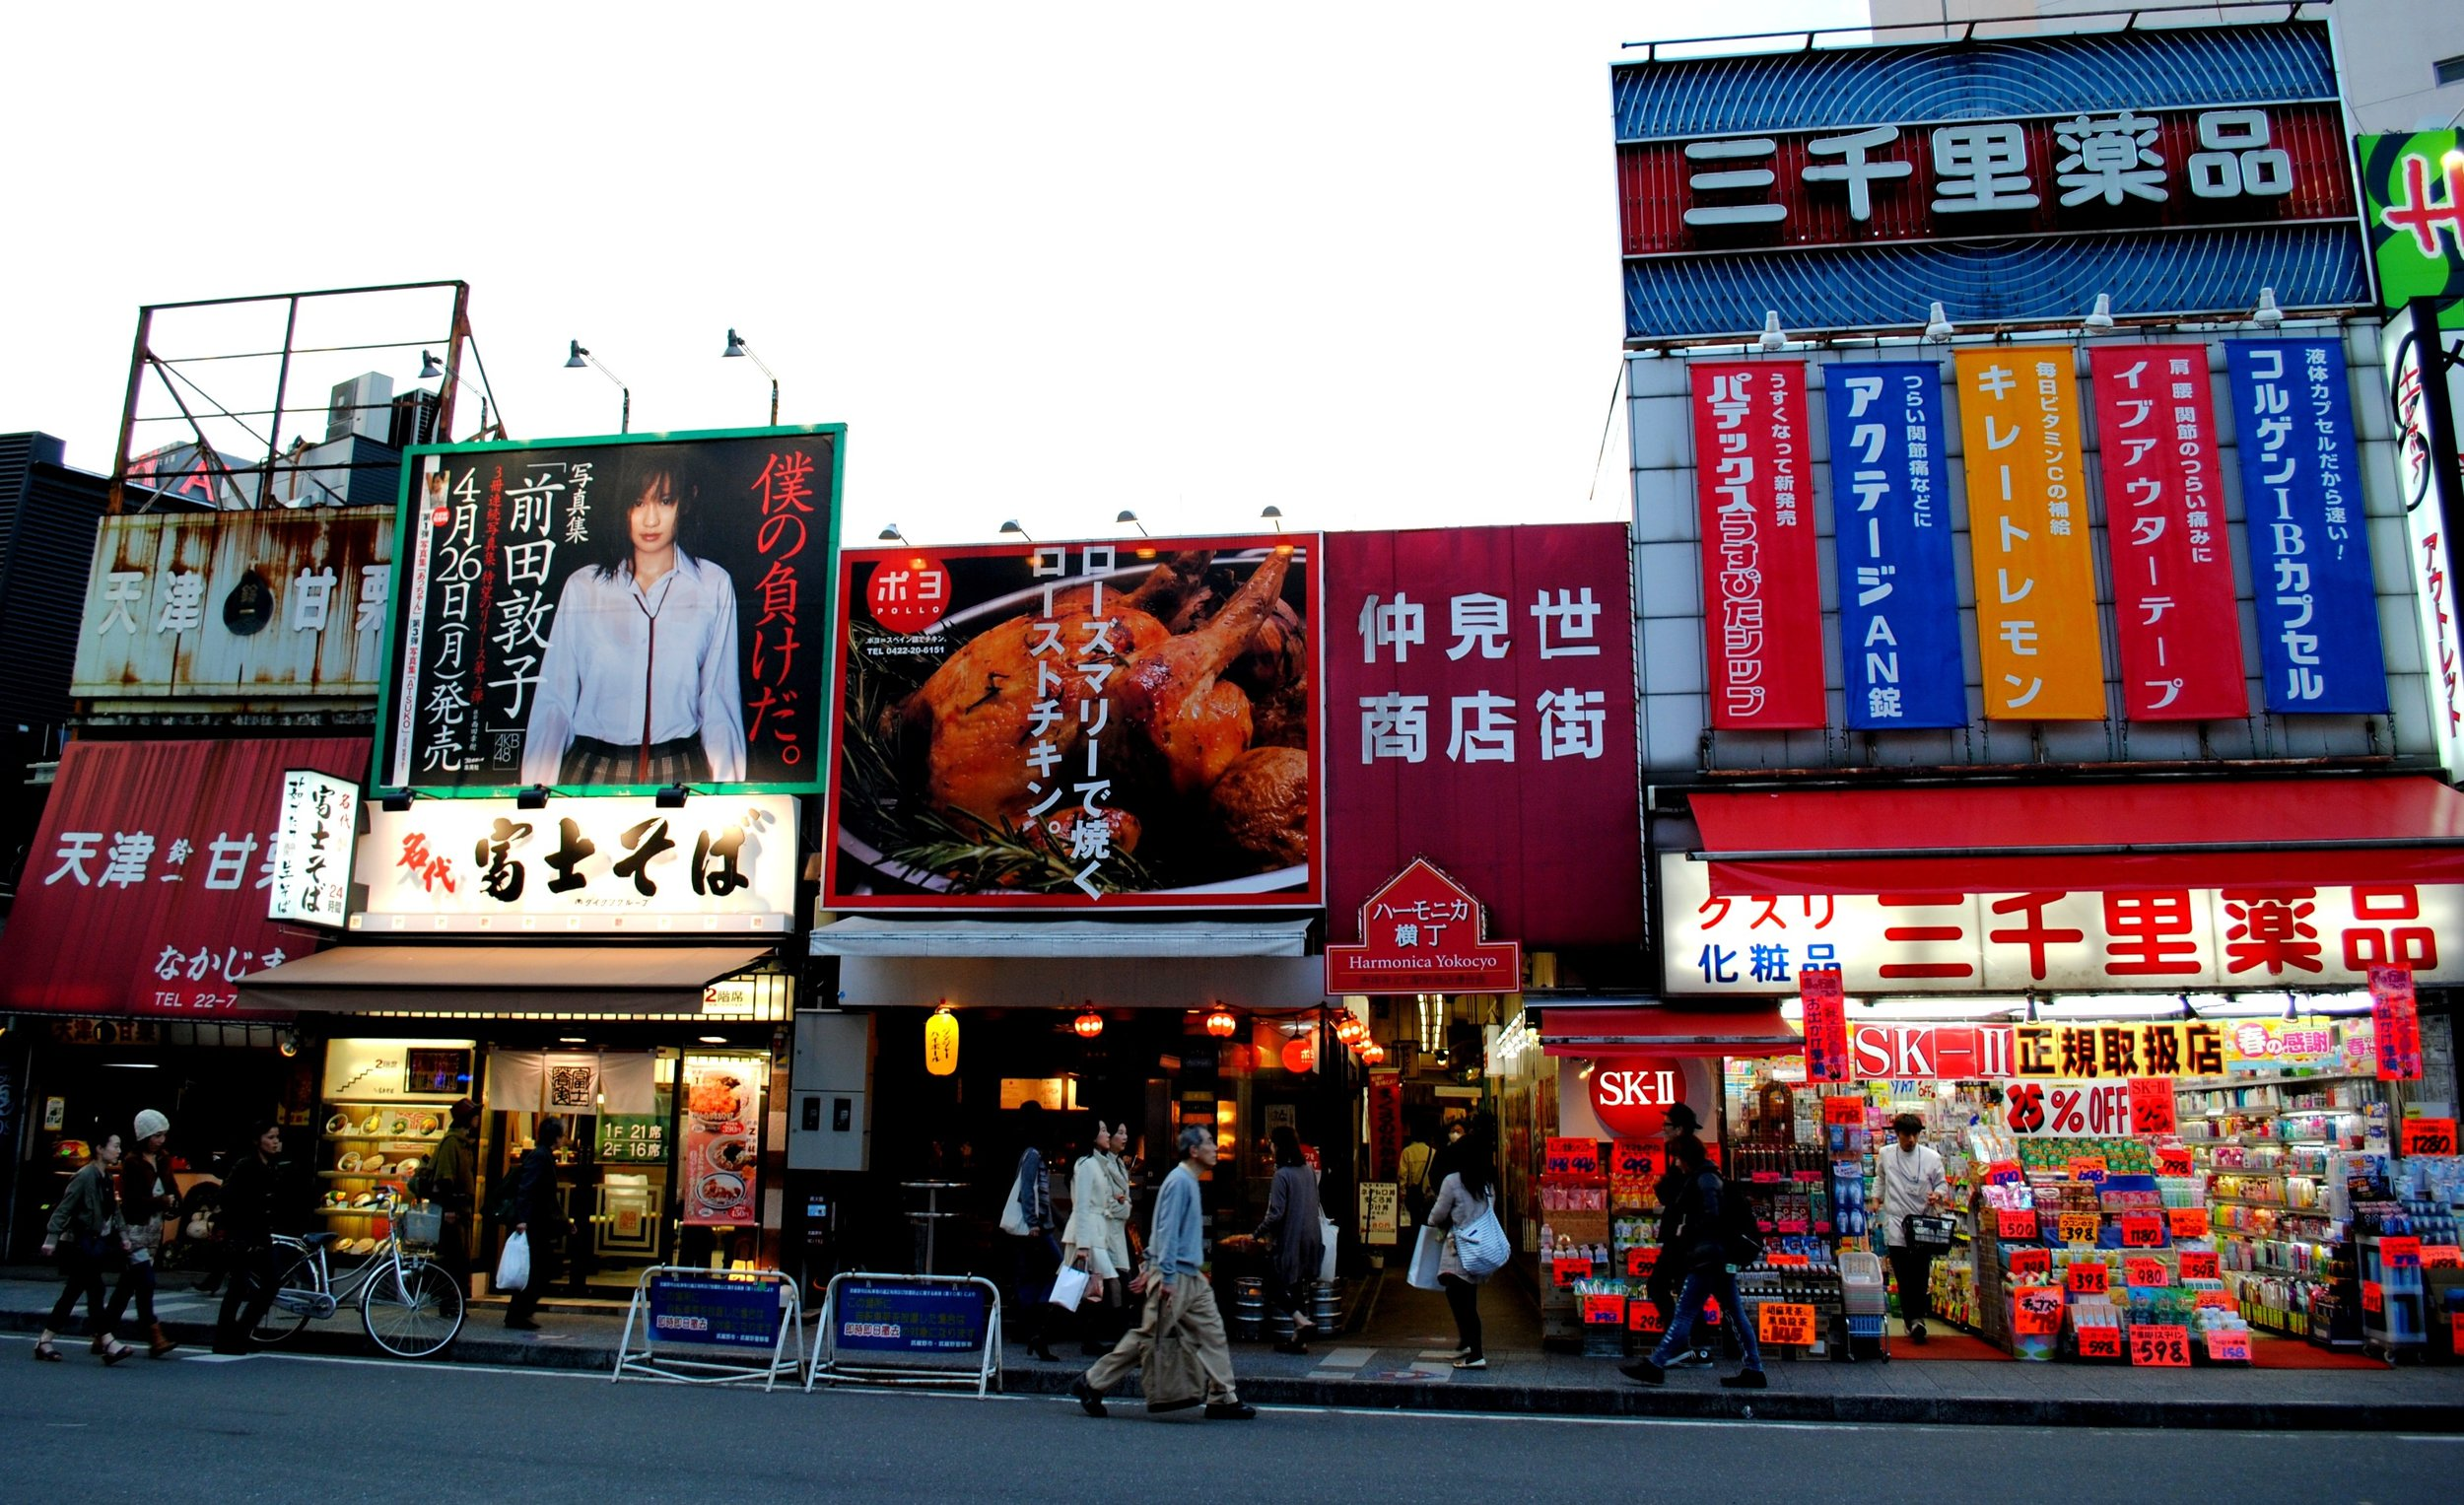 Kichijoji April 2010 169.JPG